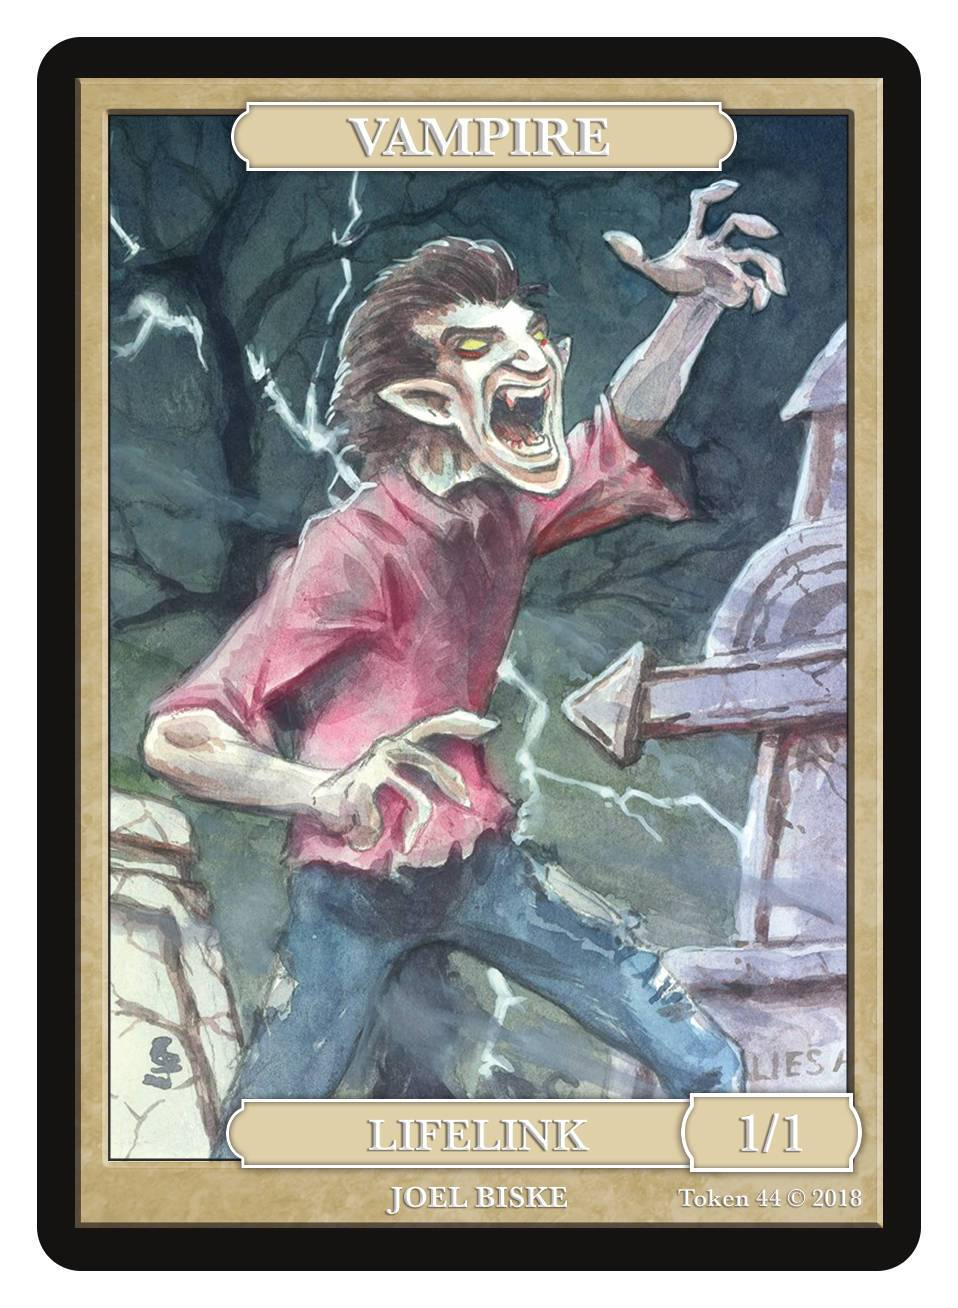 Vampire Token (1/1 - Lifelink) by Joel Biske - Token - Original Magic Art - Accessories for Magic the Gathering and other card games